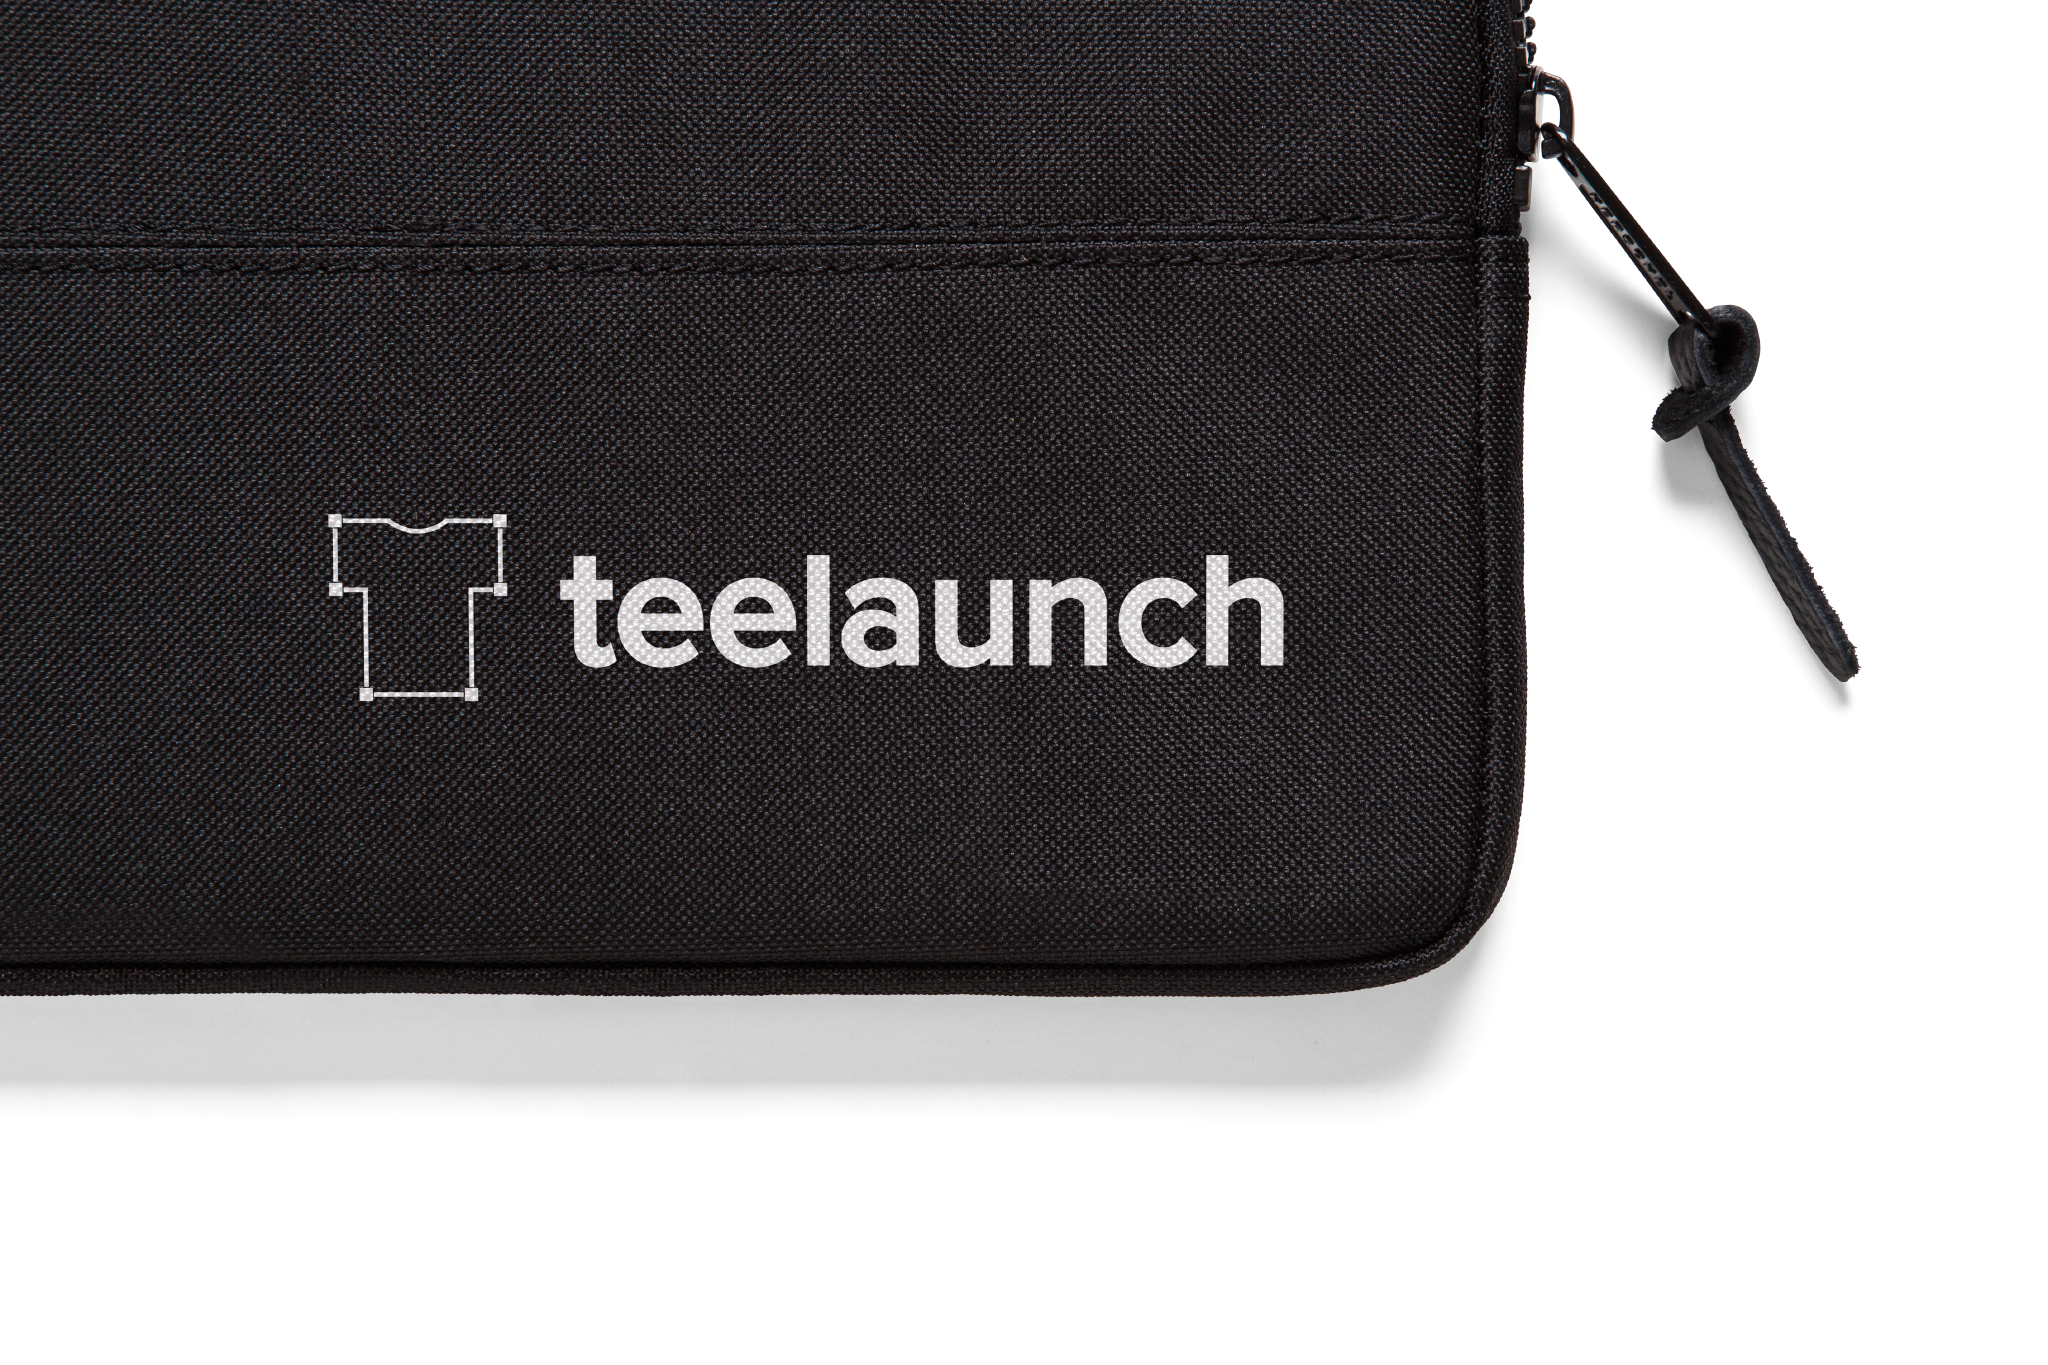 Teelaunch branding by Thinktank creative design and marketing